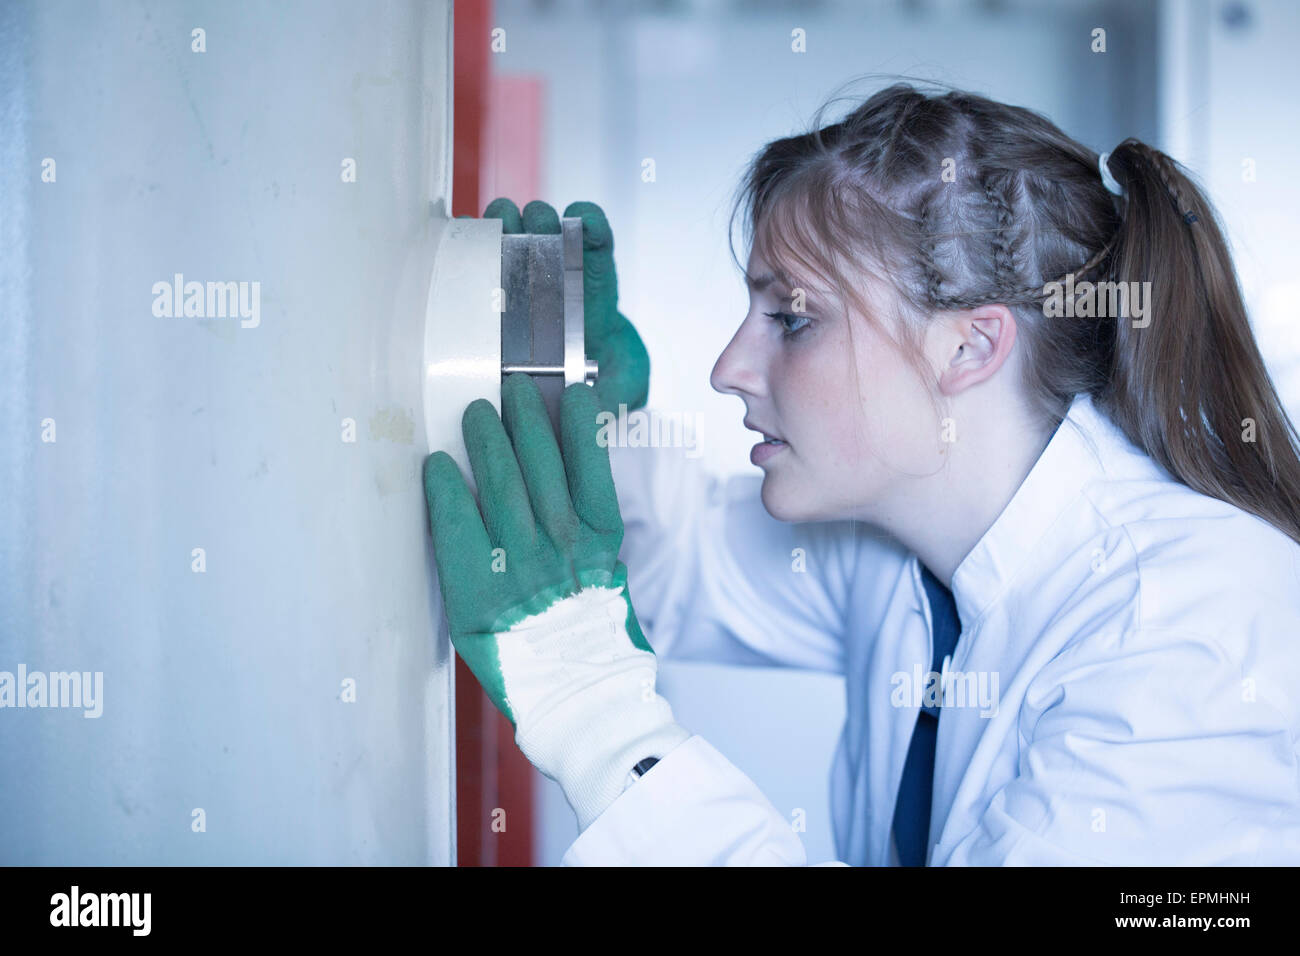 Young woman in lab coat looking through peephole - Stock Image